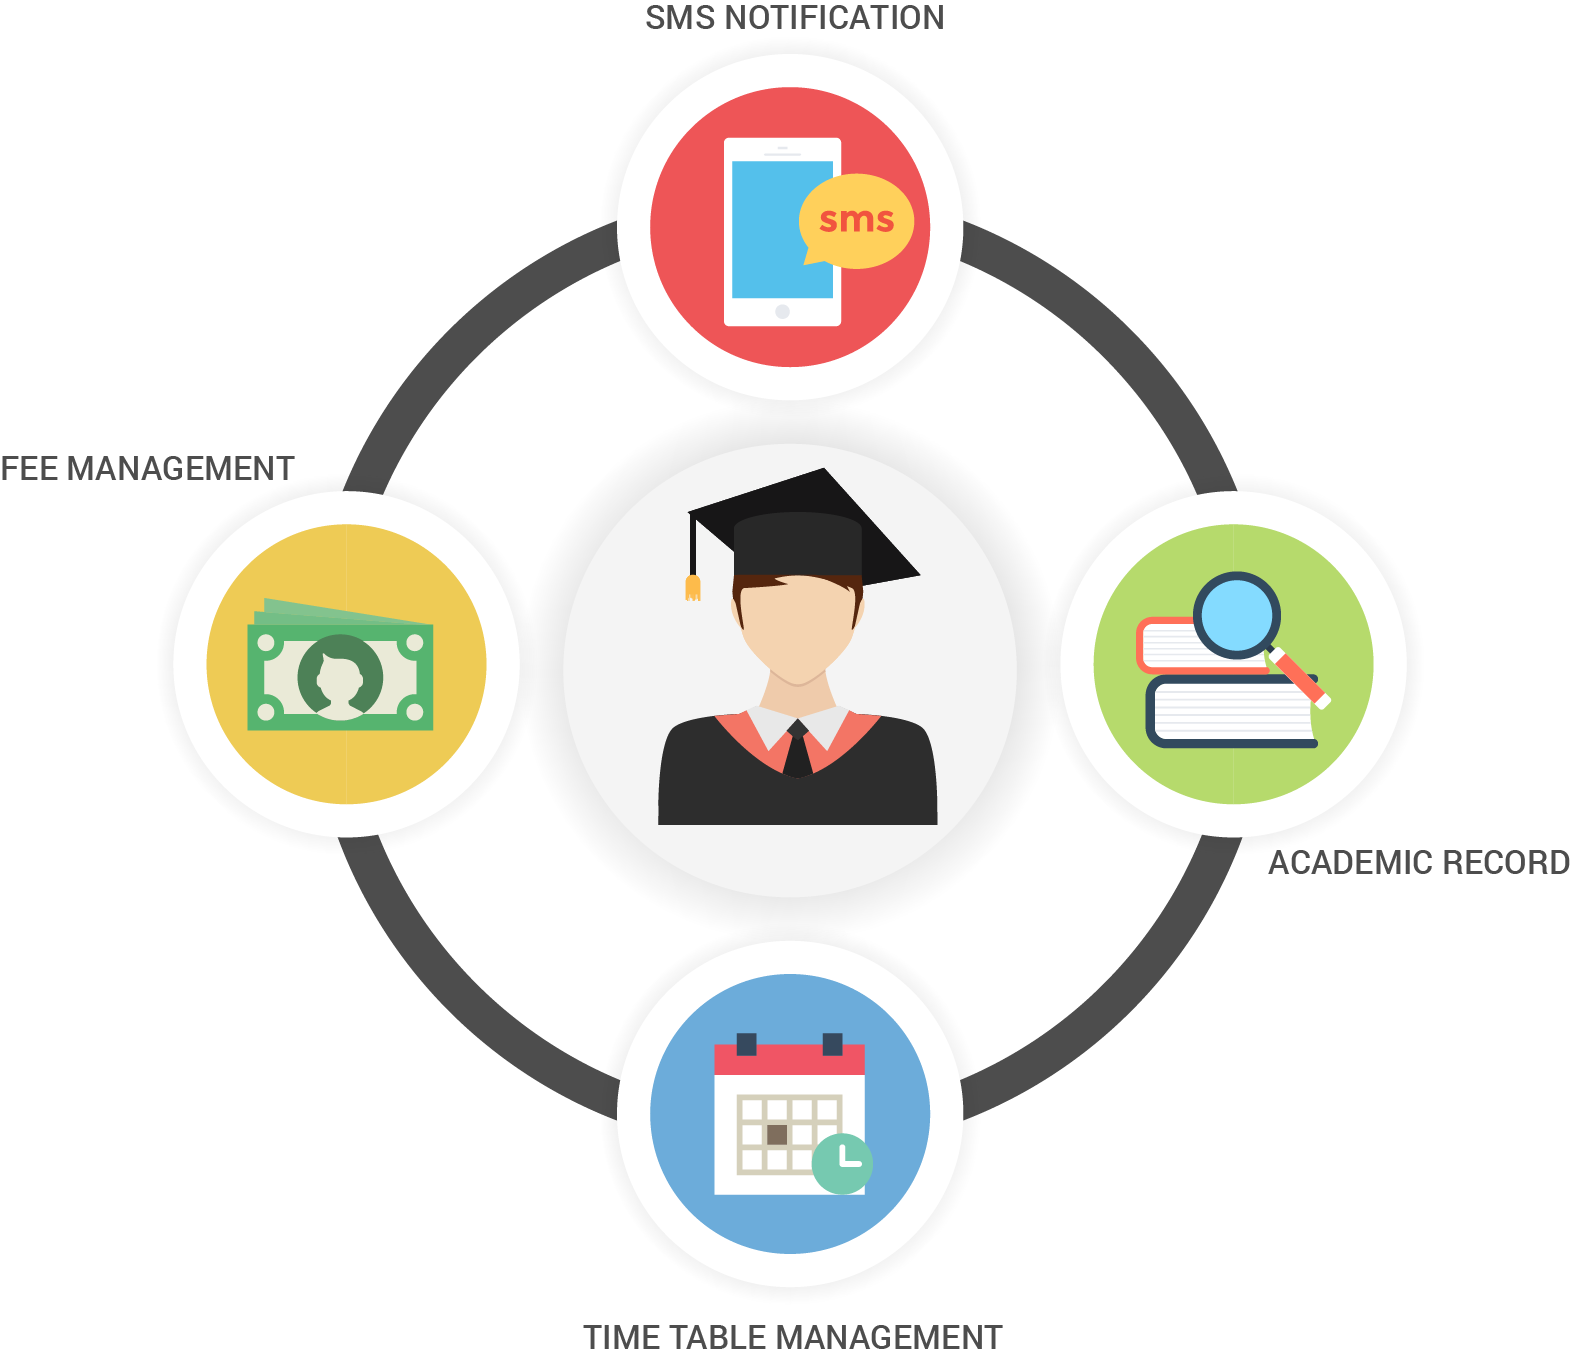 school management systems Fully online school management system free 30-day trial sign up in 60 seconds track attendance, homework, gradebook, report cards, scheduler, parent portal and more.